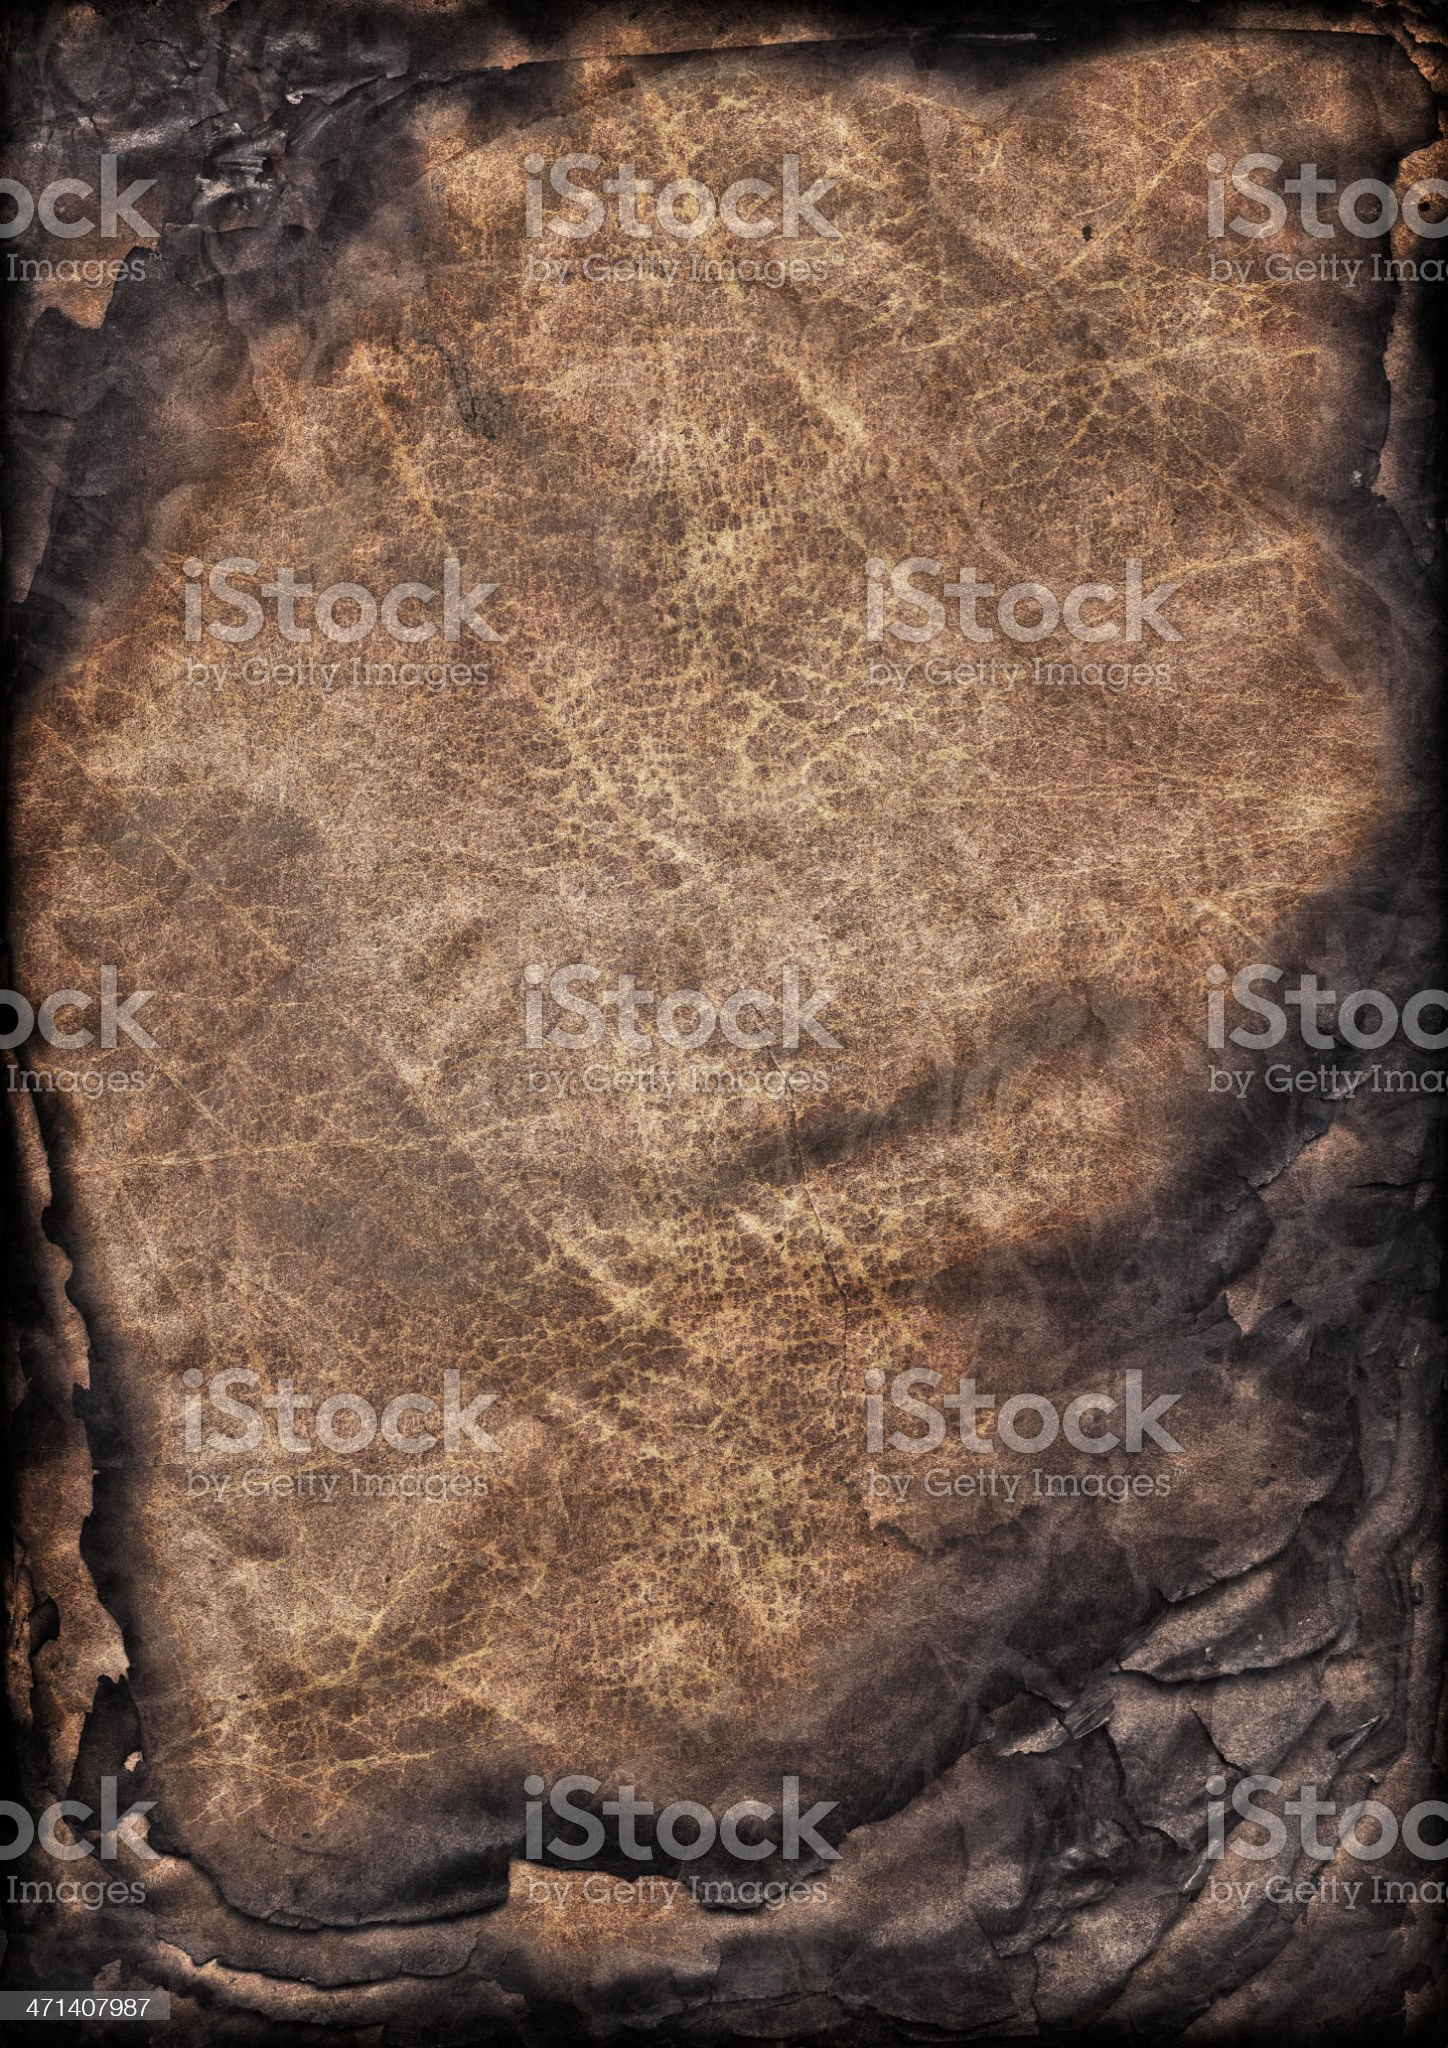 High Resolution Burnt Antique Parchment Sheets Stack Vignette Grunge Texture royalty-free stock photo